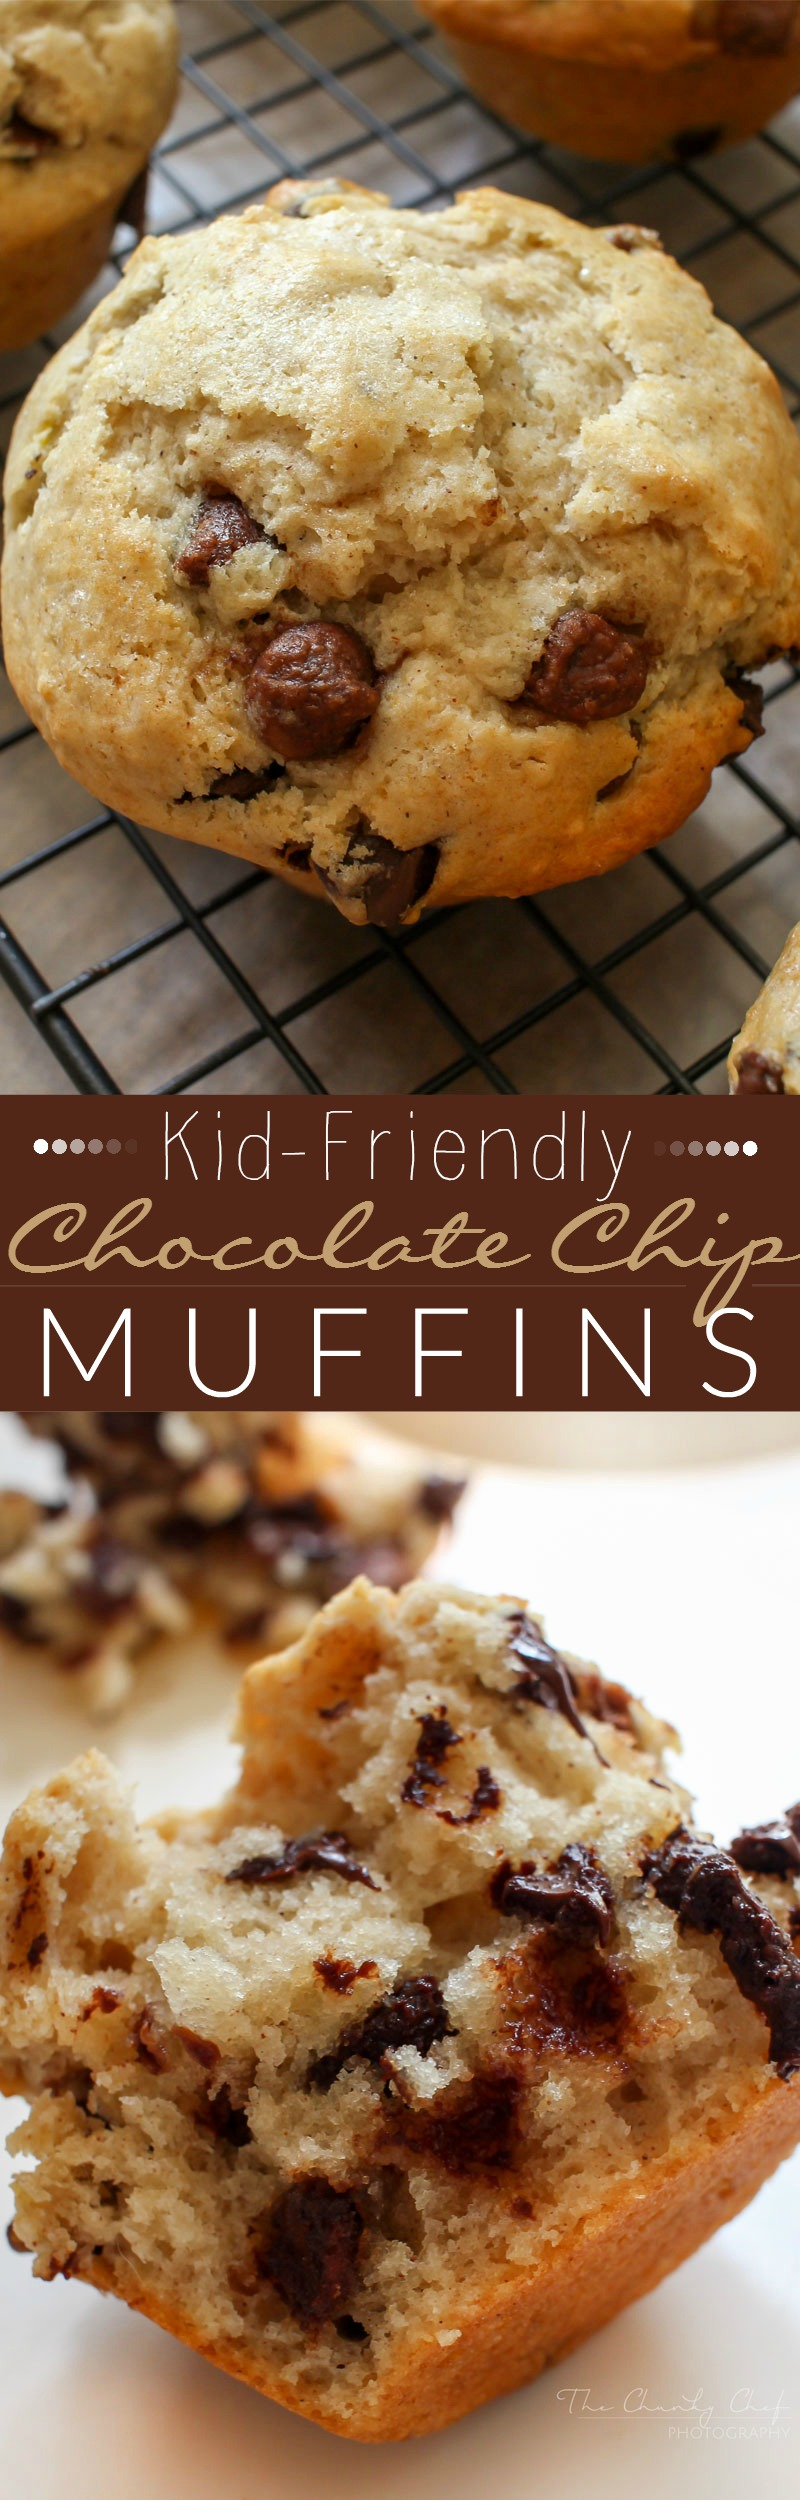 These are the BEST kid-friendly Chocolate Chip Muffins. You won't be able to eat just one of these because of their warm, chocolatey, fluffy goodness!